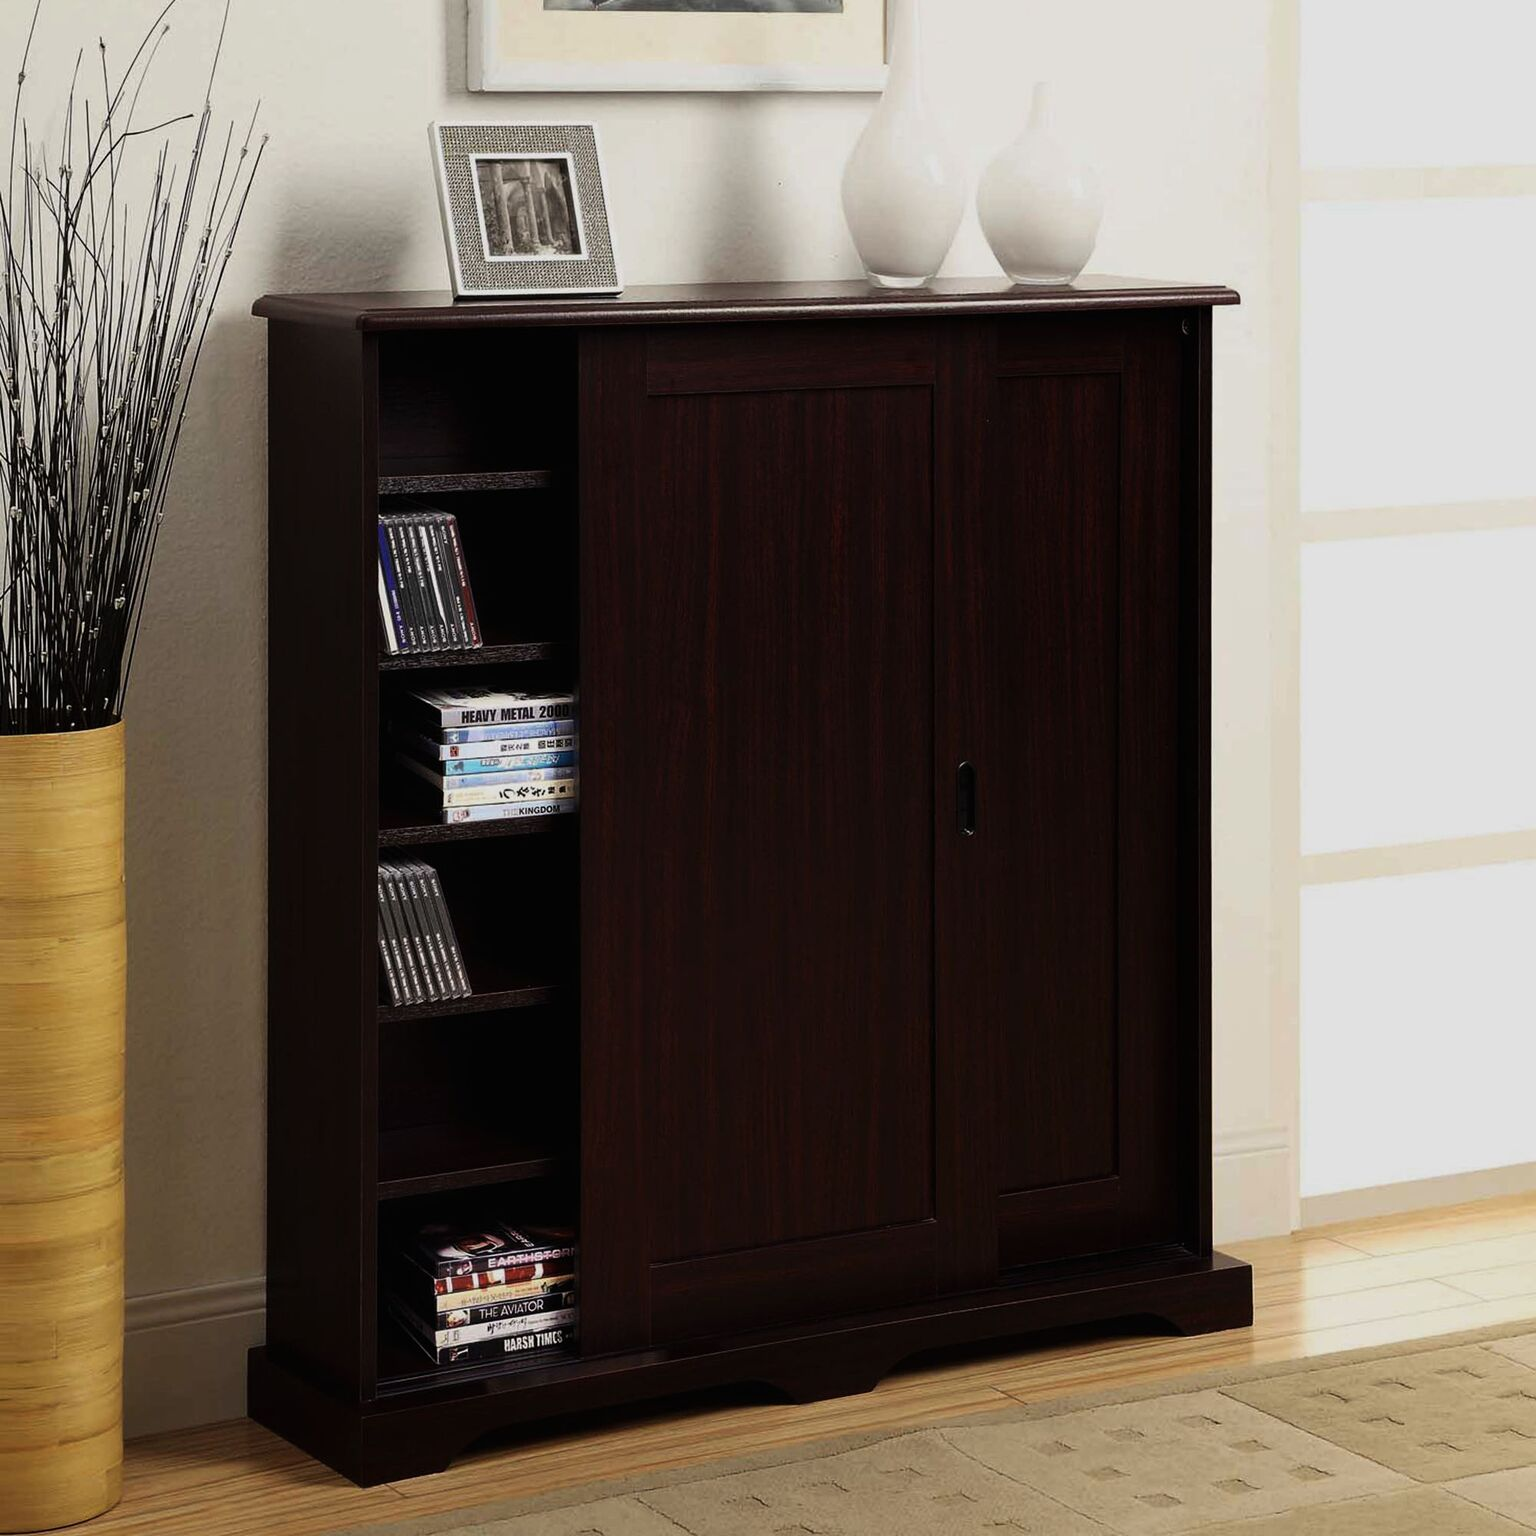 4D Concepts 51601 Sliding Door Multimedia Stand in Cherry